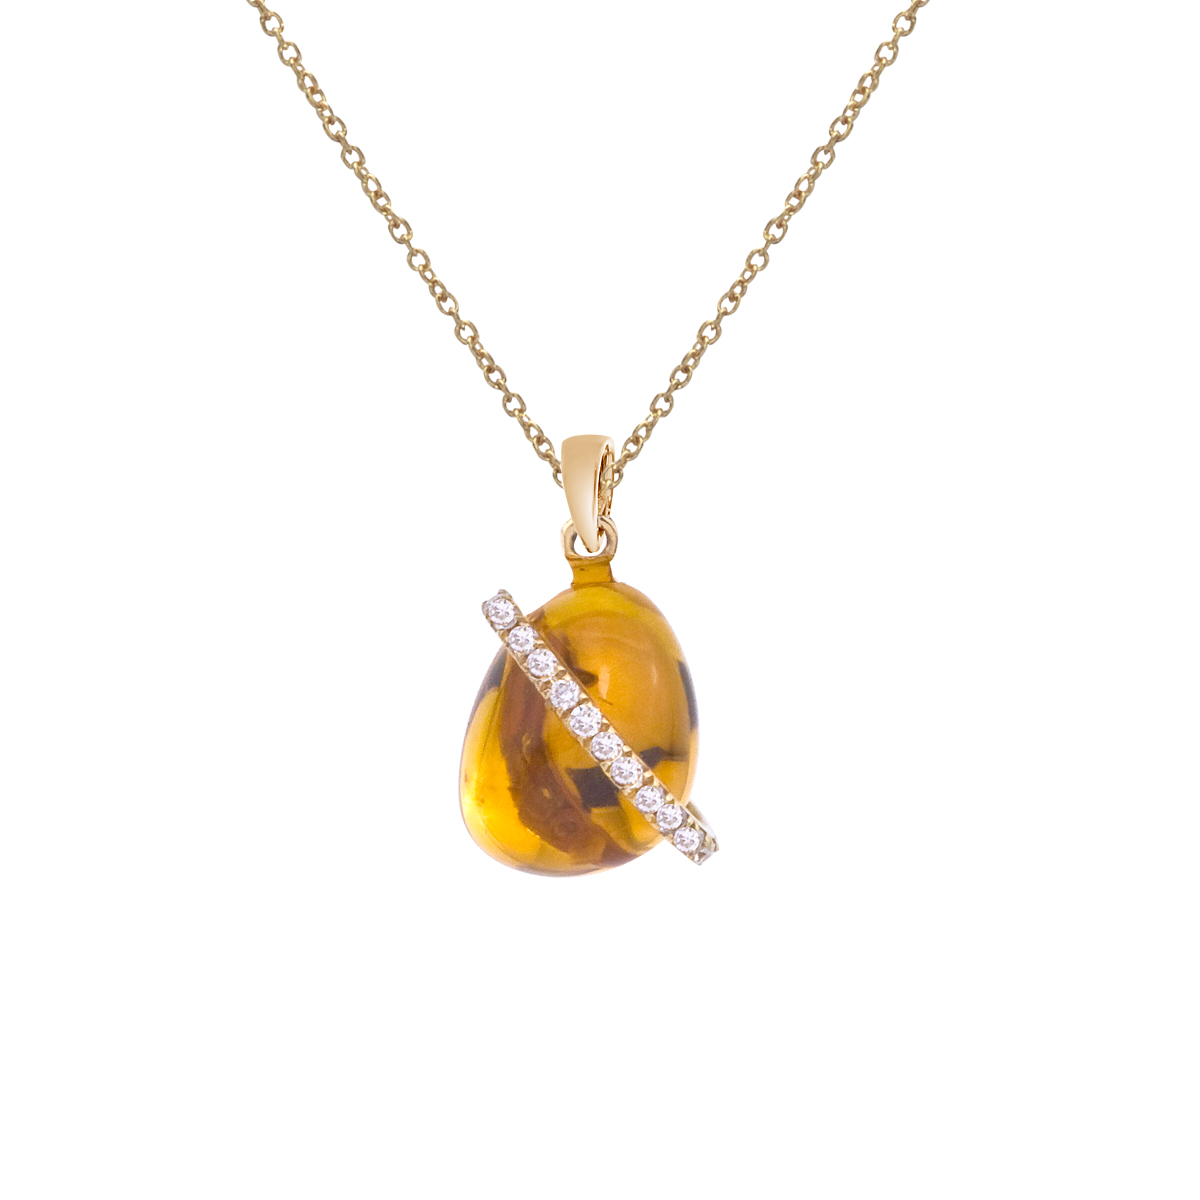 A luminous 9x7 mm cabochon citrine pendant with a ring of bright diamonds set in 14k yellow gold.